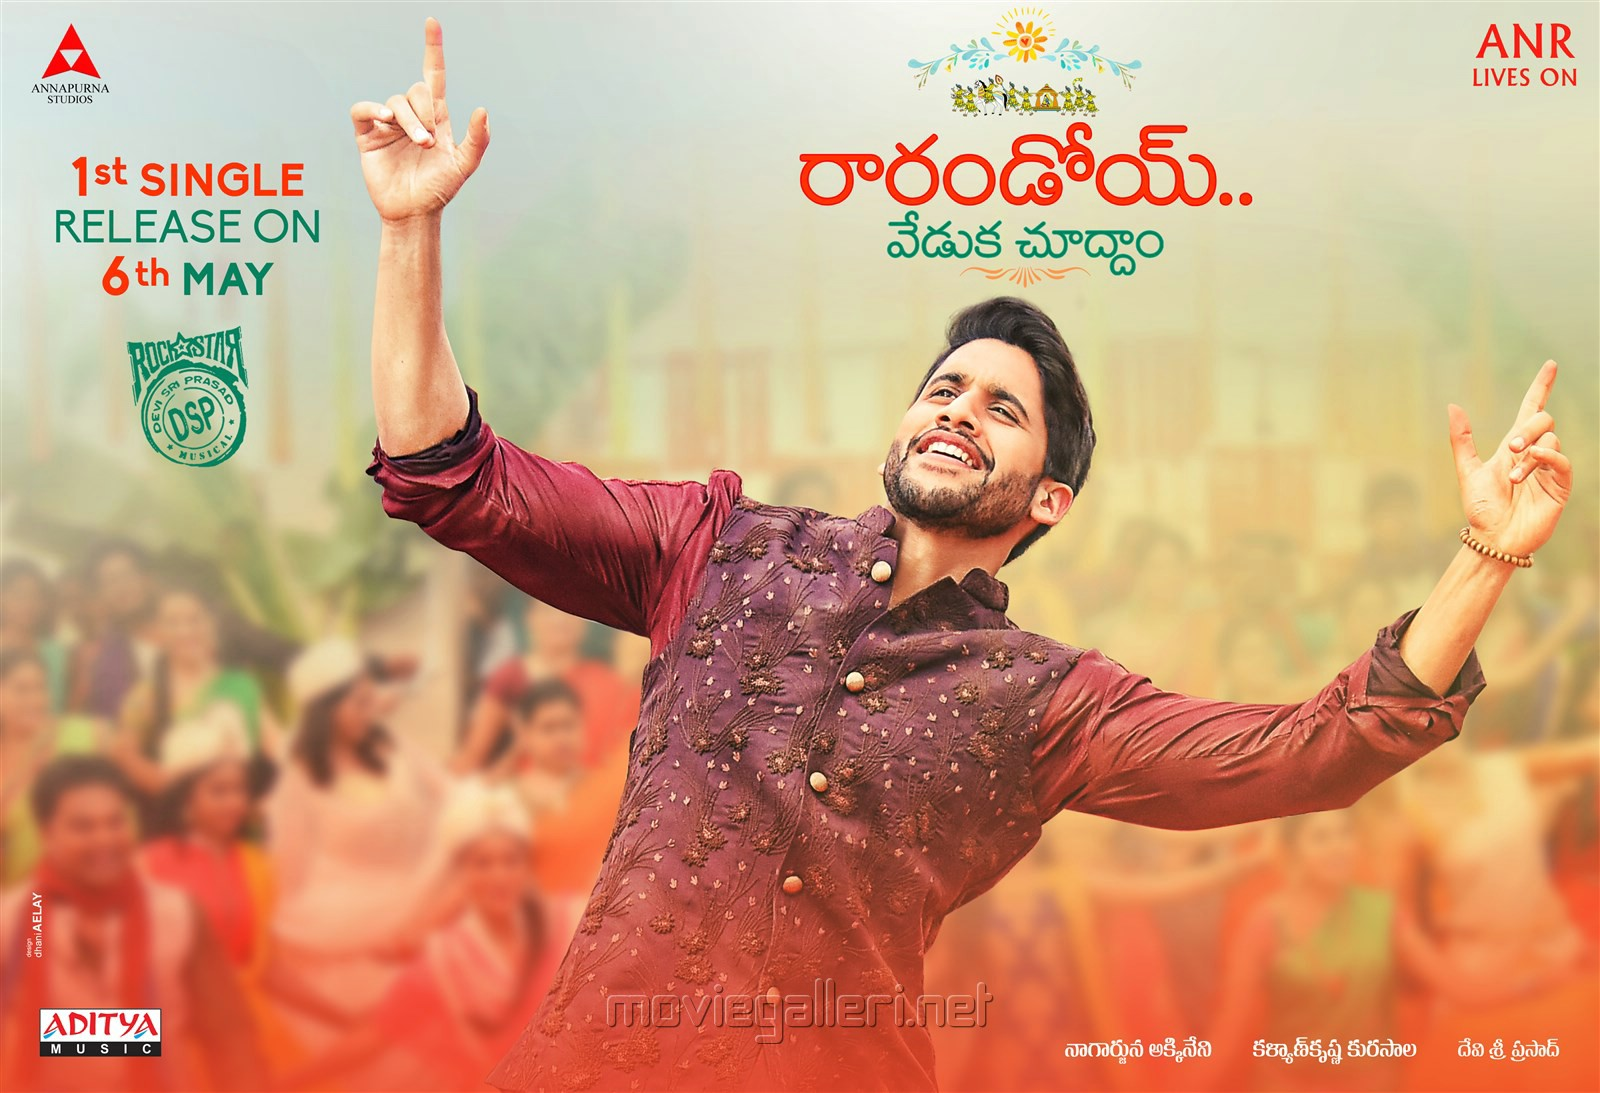 Naga Chaitanya's 'Rarandoi Veduka Chuddam' Single Release on May 6th Wallpaper